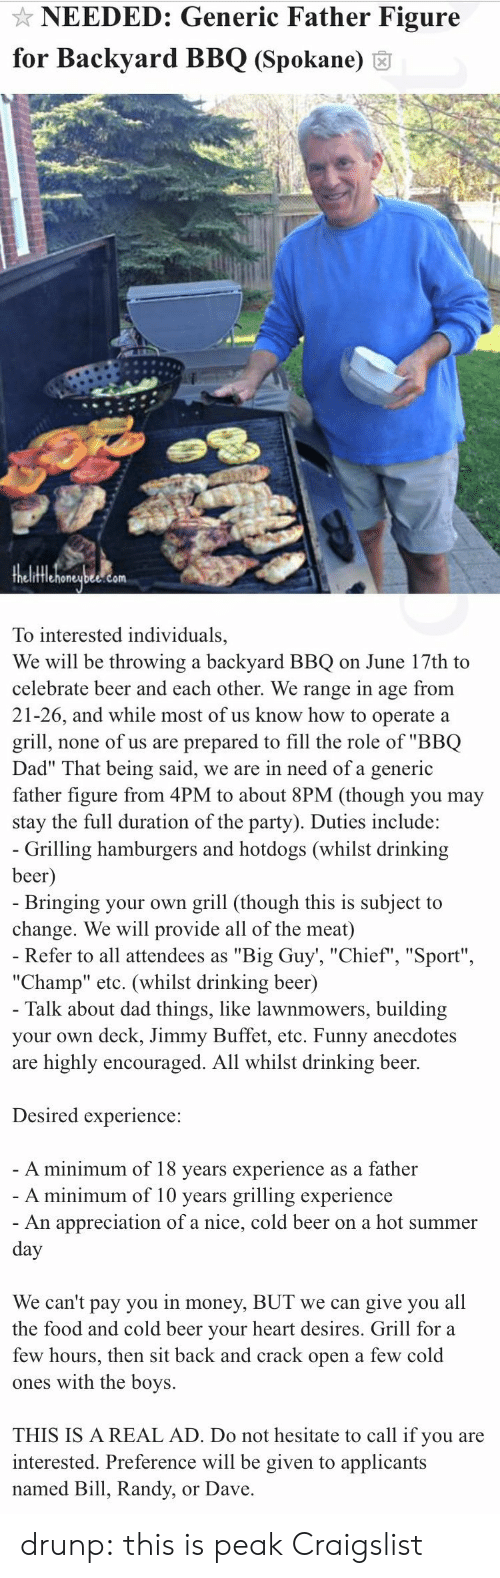 "hesitate: NEEDED: Generic Father Figure  for Backyard BBQ (Spokane) 6  fflehoneubee.com  To interested individuals,  We will be throwing a backyard BBQ on June 17th to  celebrate beer and each other. We range in age from  21-26, and while most of us know how to operate a  grill, none of us are prepared to fill the role of ""BBQ  Dad"" That being said, we are in need of a generic  father figure from 4PM to about 8PM (though you may  stay the full duration of the party). Duties include:   Grilling hamburgers and hotdogs (whilst drinking  beer  Bringing your own grill (though this is subject to  change. We will provide all of the meat)  Refer to all attendees as ""Big Guy', ""Chief"", ""Sport""  ""Champ"" etc. (whilst drinking beer)  Talk about dad things, like lawnmowers, building  your own deck, Jimmy Buffet, etc. Funny anecdotes  are highly encouraged. All whilst drinking beer.  Desired experience:  A minimum of 18 vears experience as a father  A minimum of 10 years grilling experience  An appreciation of a nice, cold beer on a hot summer  We can't pay you in money, BUT we can give you all  the food and cold beer vour heart desires. Grill for a  few hours, then sit back and crack open a few cold  ones with the boys.  THIS IS A REAL AD. Do not hesitate to call if you are  interested. Preference will be given to applicants  named Bill, Randy, or Dave drunp: this is peak Craigslist"